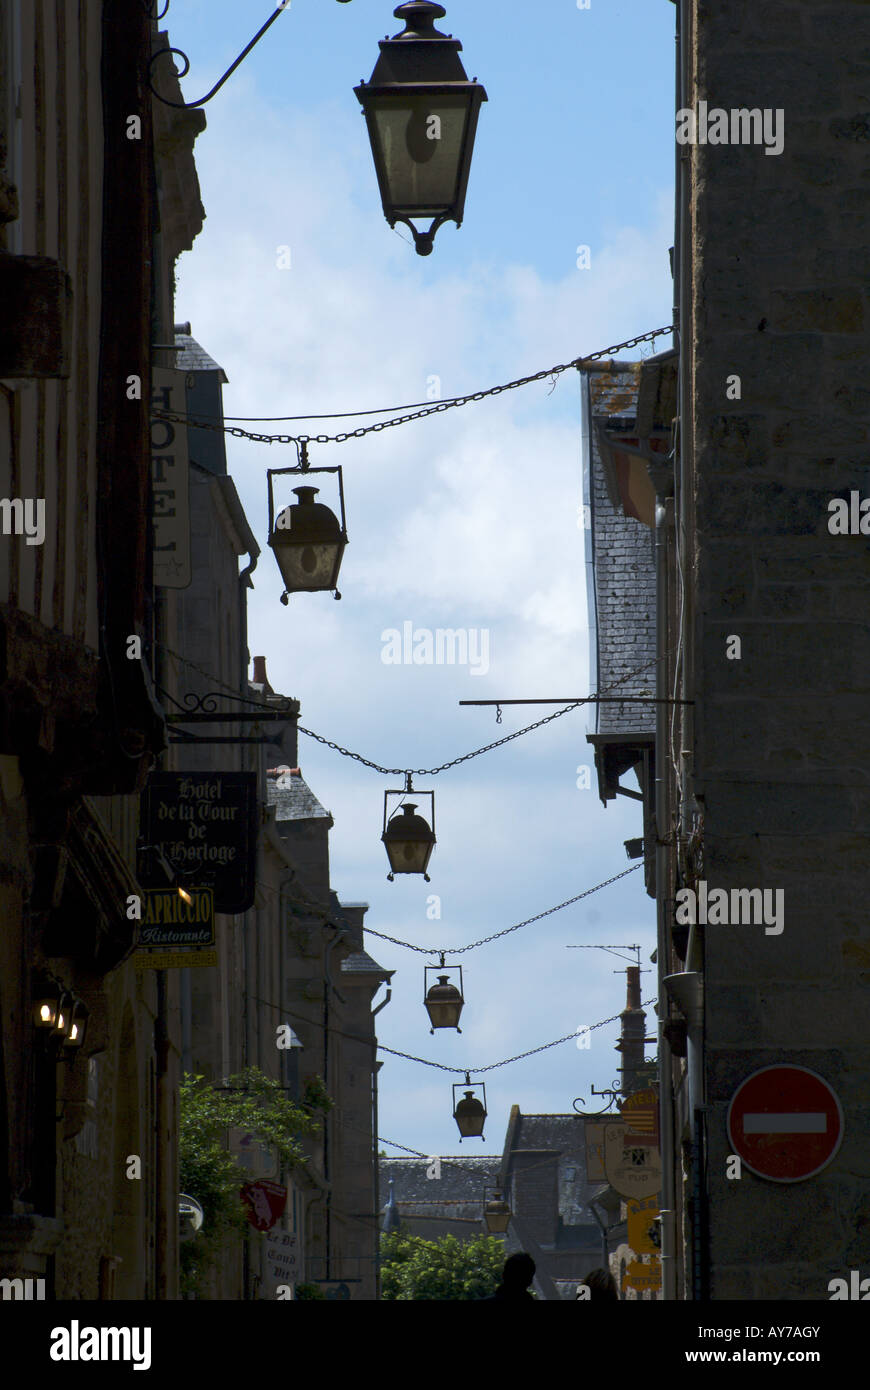 Lights hanging across street in French medieval town of Dinan Stock Photo